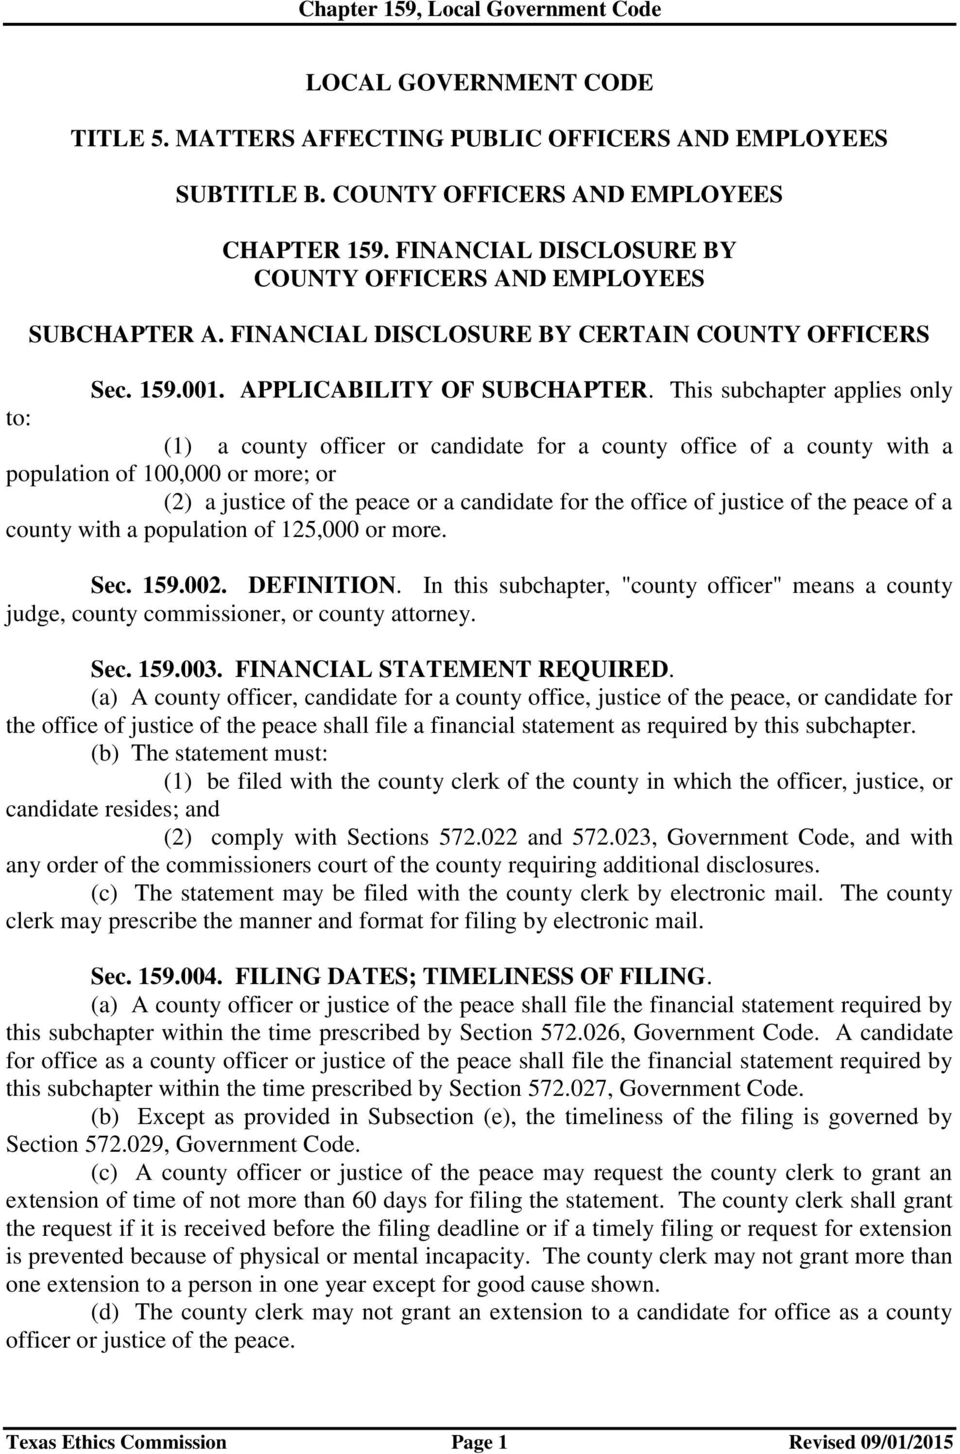 This subchapter applies only to: (1) a county officer or candidate for a county office of a county with a population of 100,000 or more; or (2) a justice of the peace or a candidate for the office of